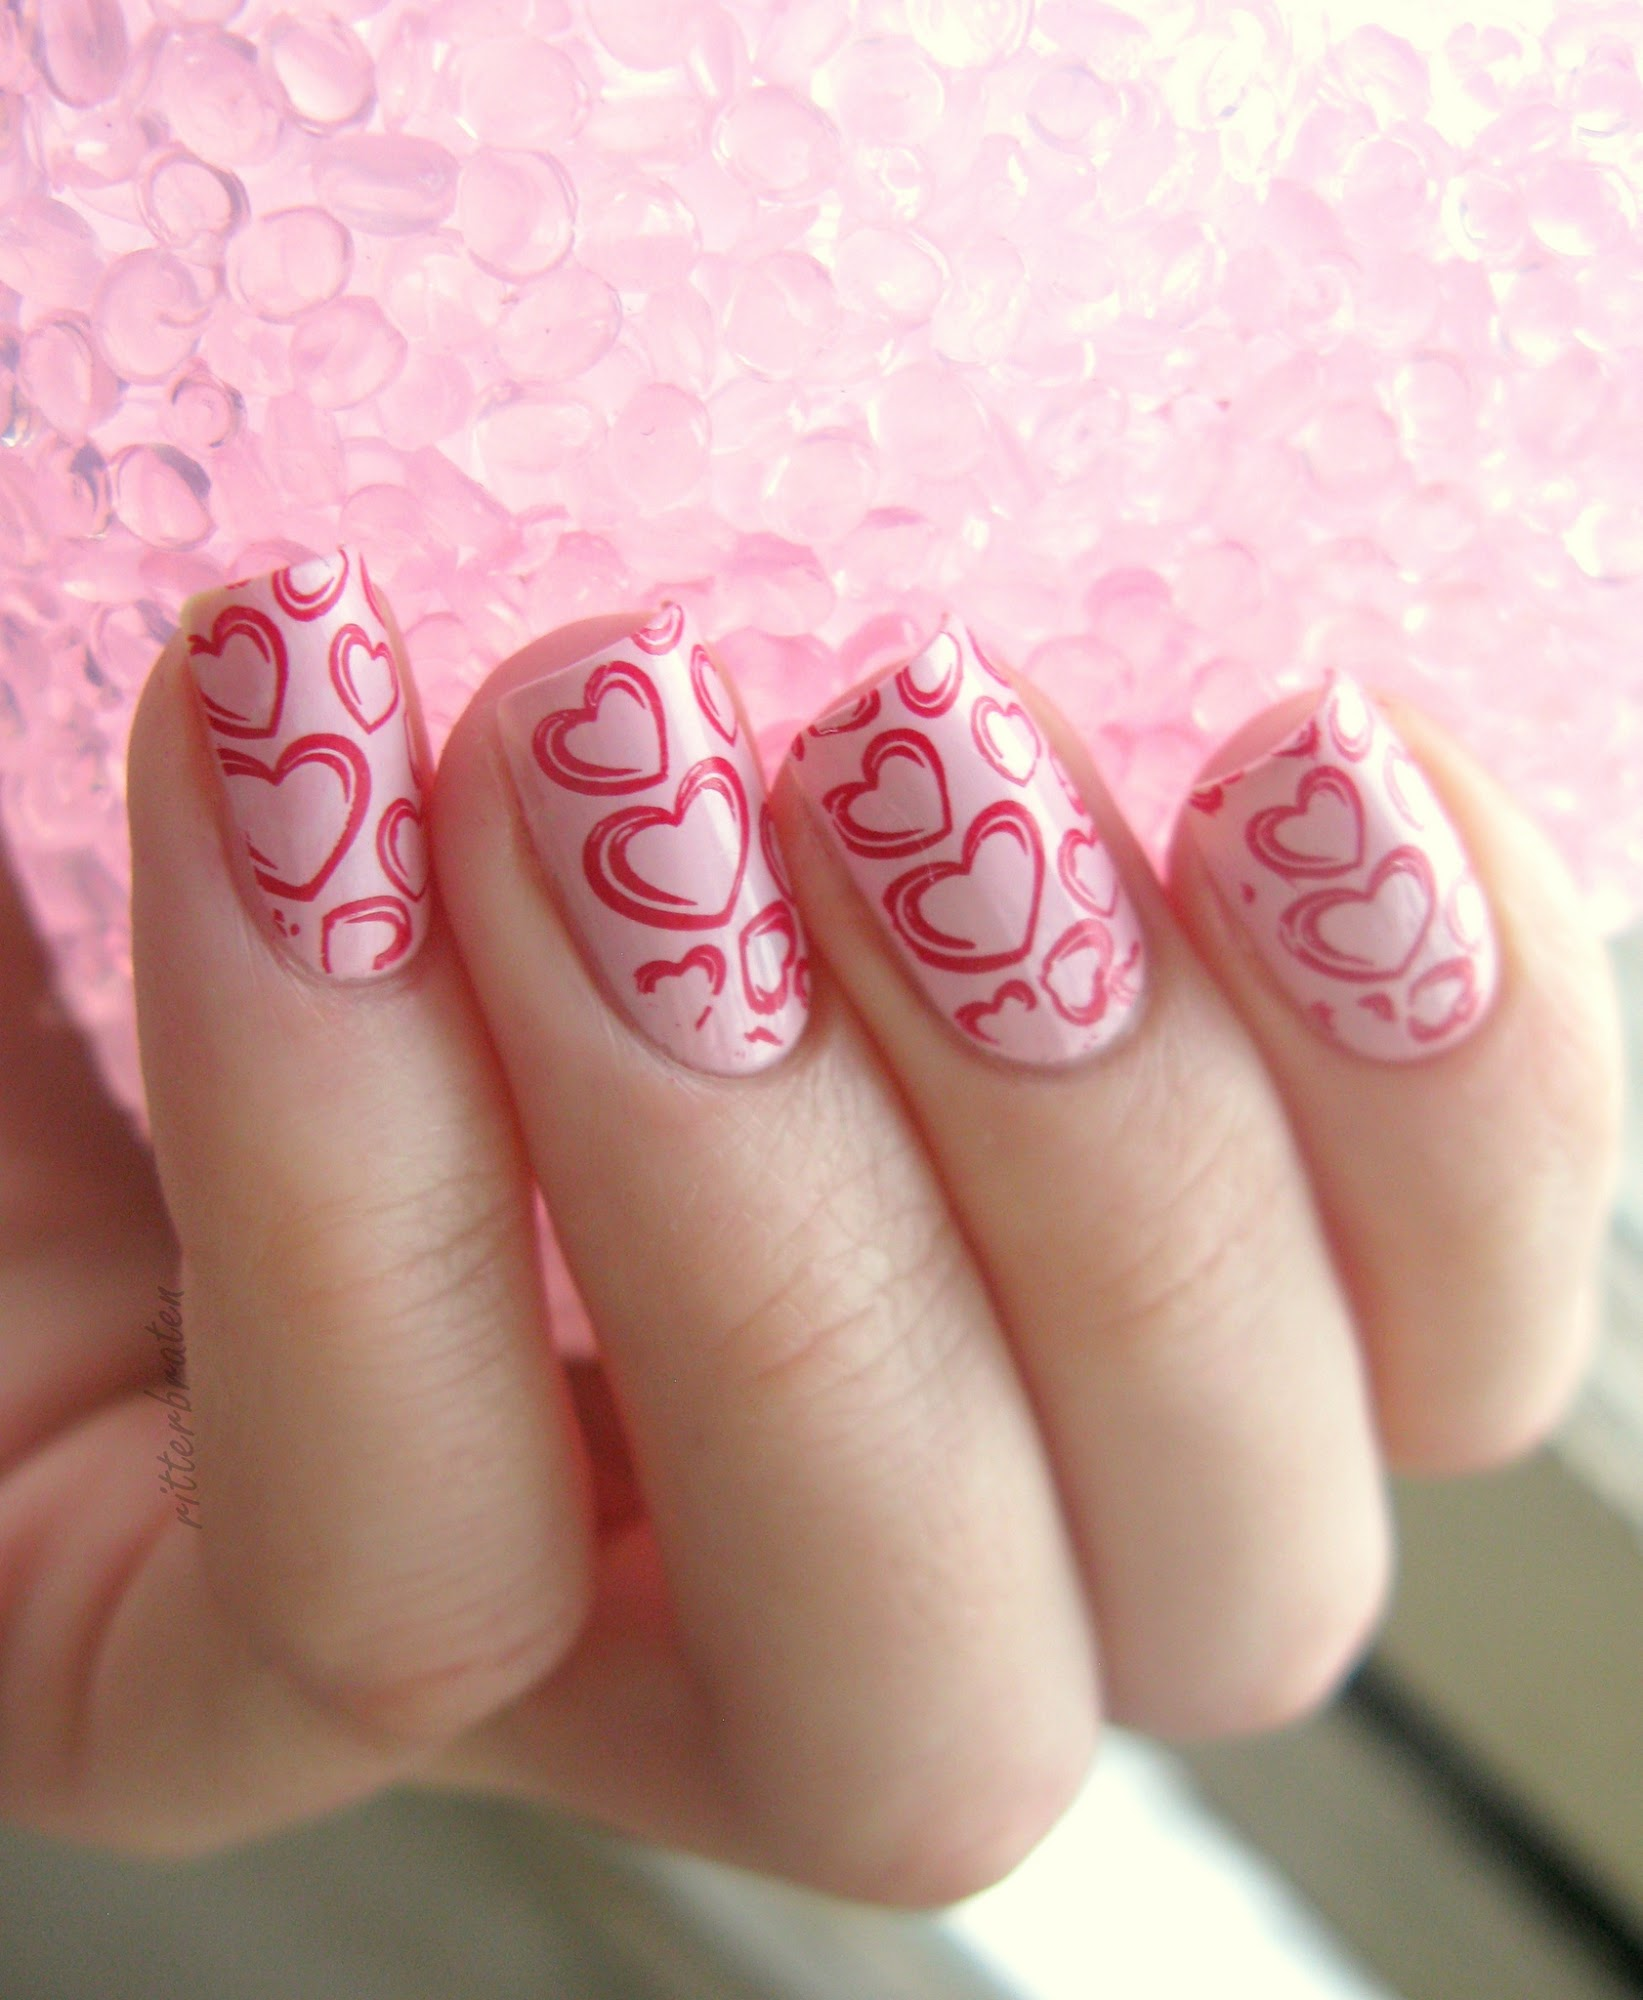 saint valentine's nails